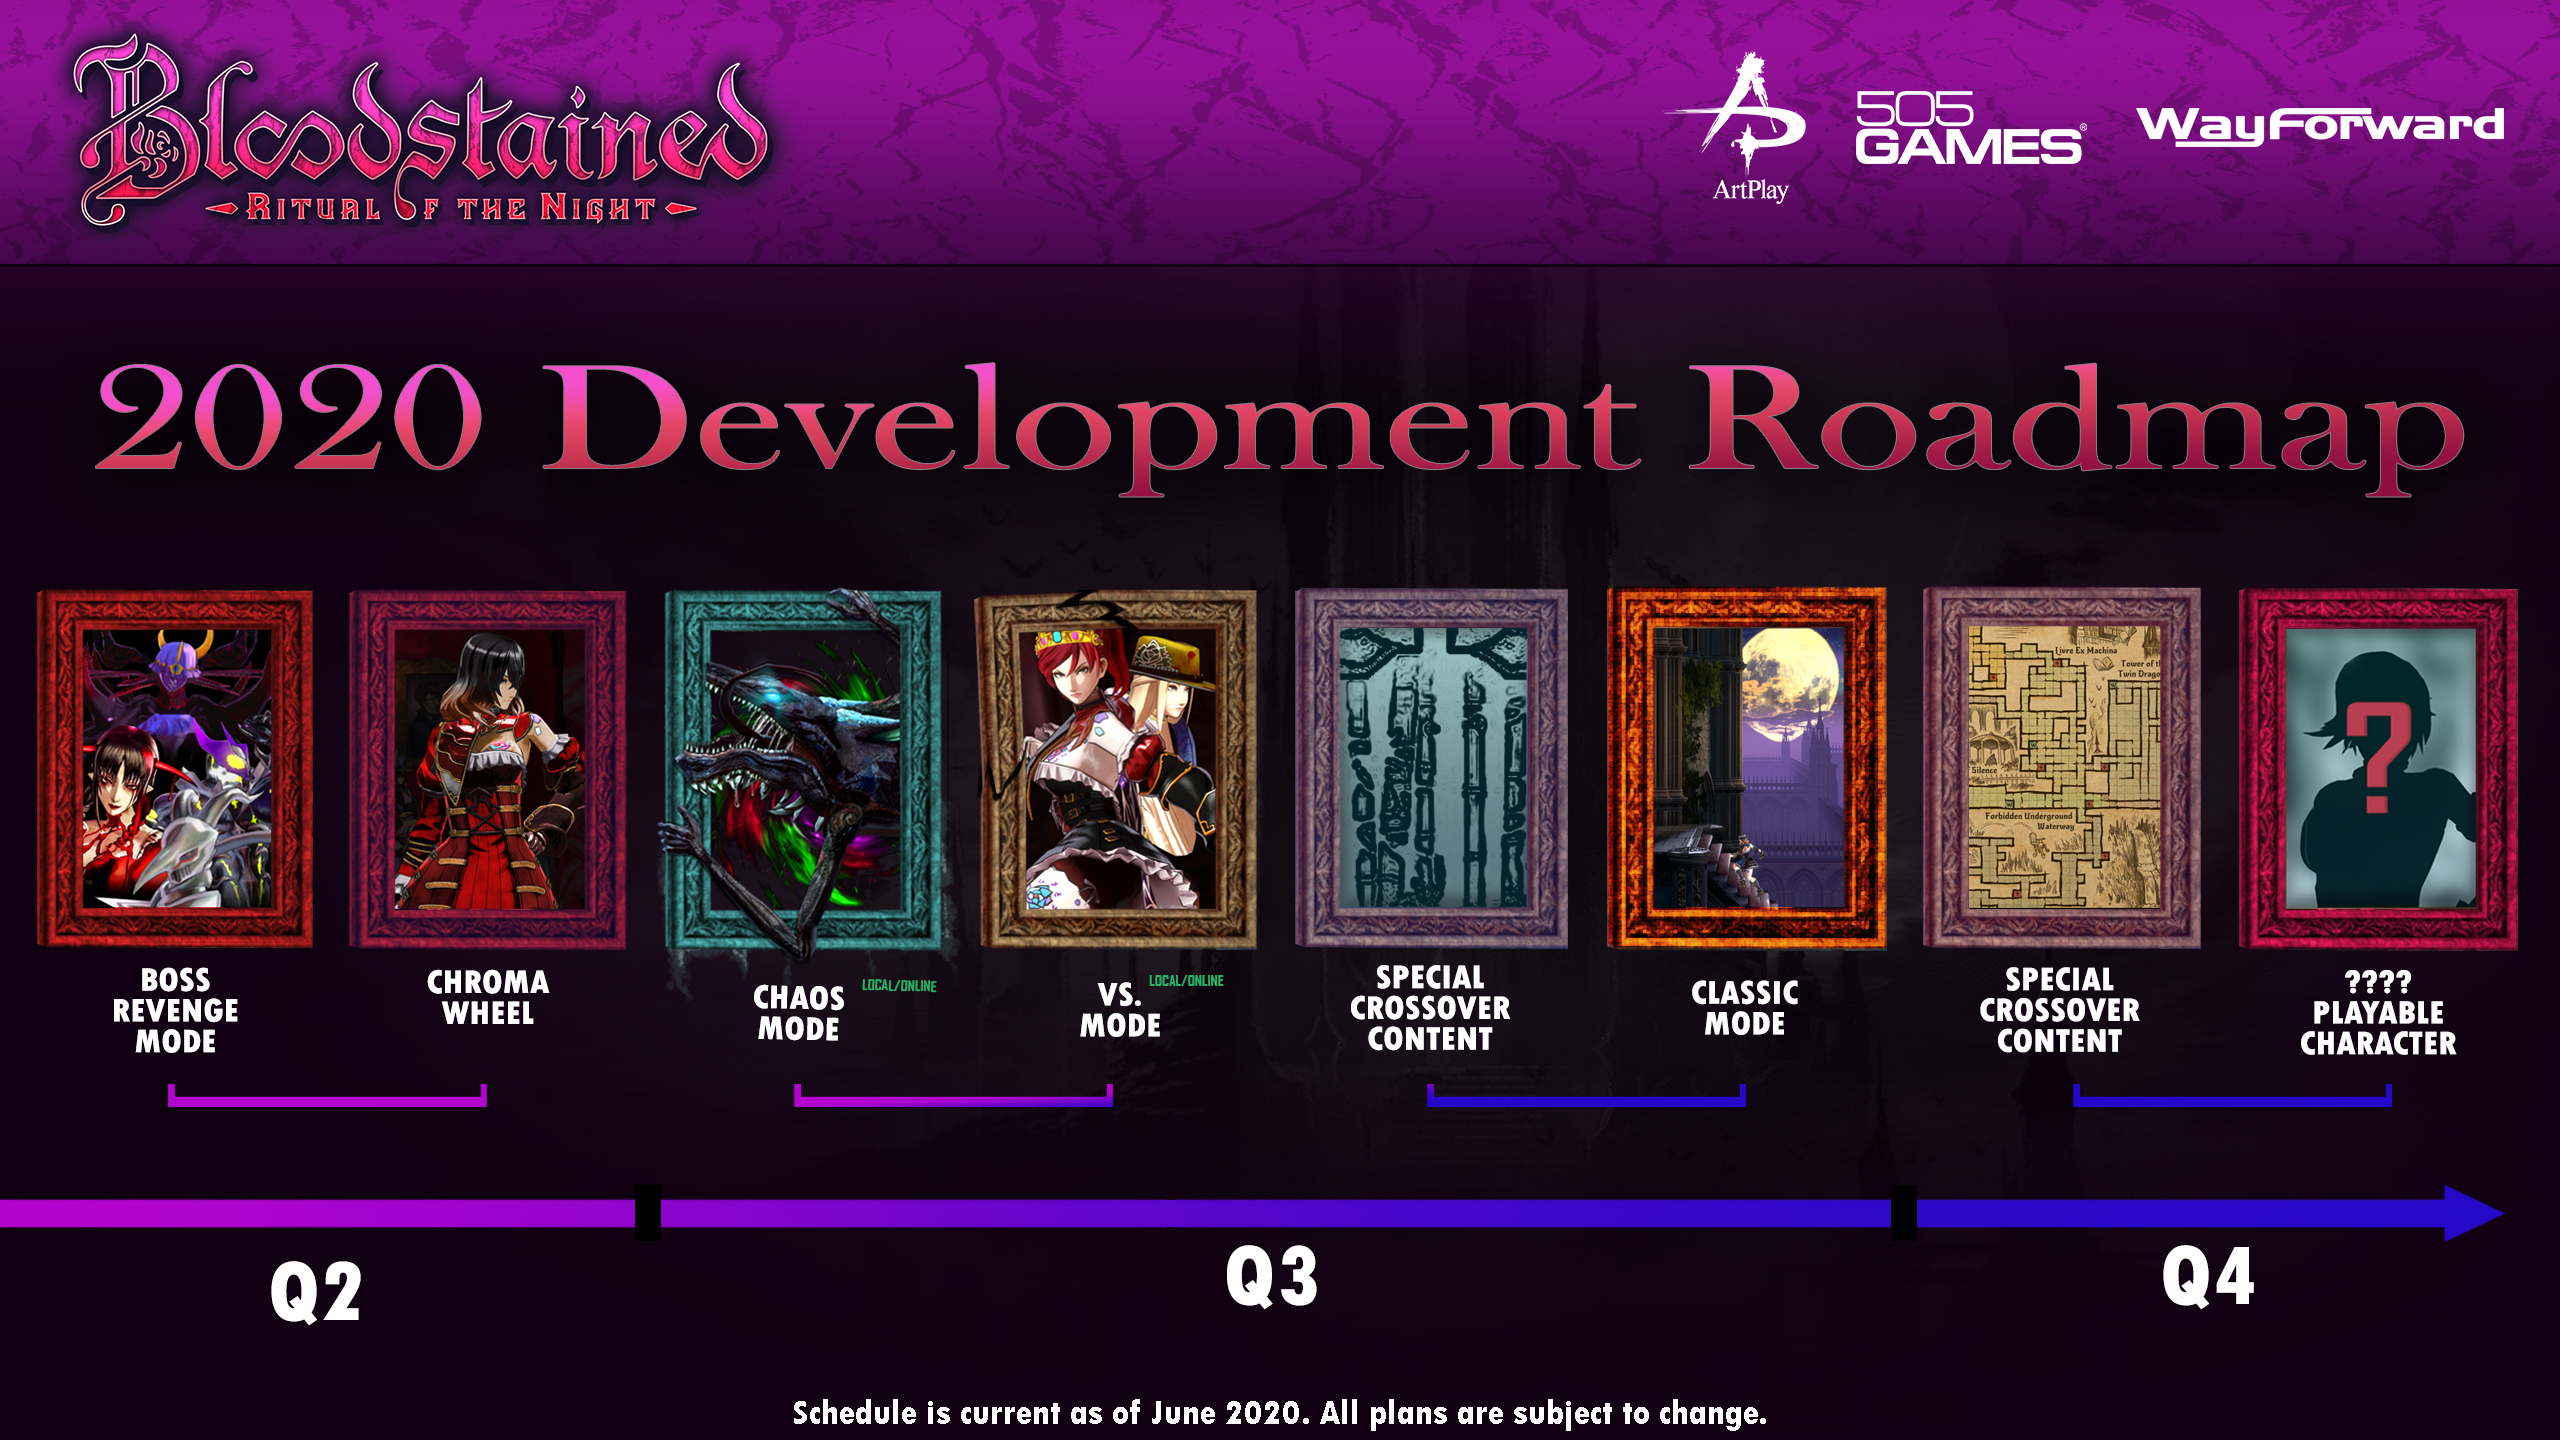 Bloodstained 2020 roadmap